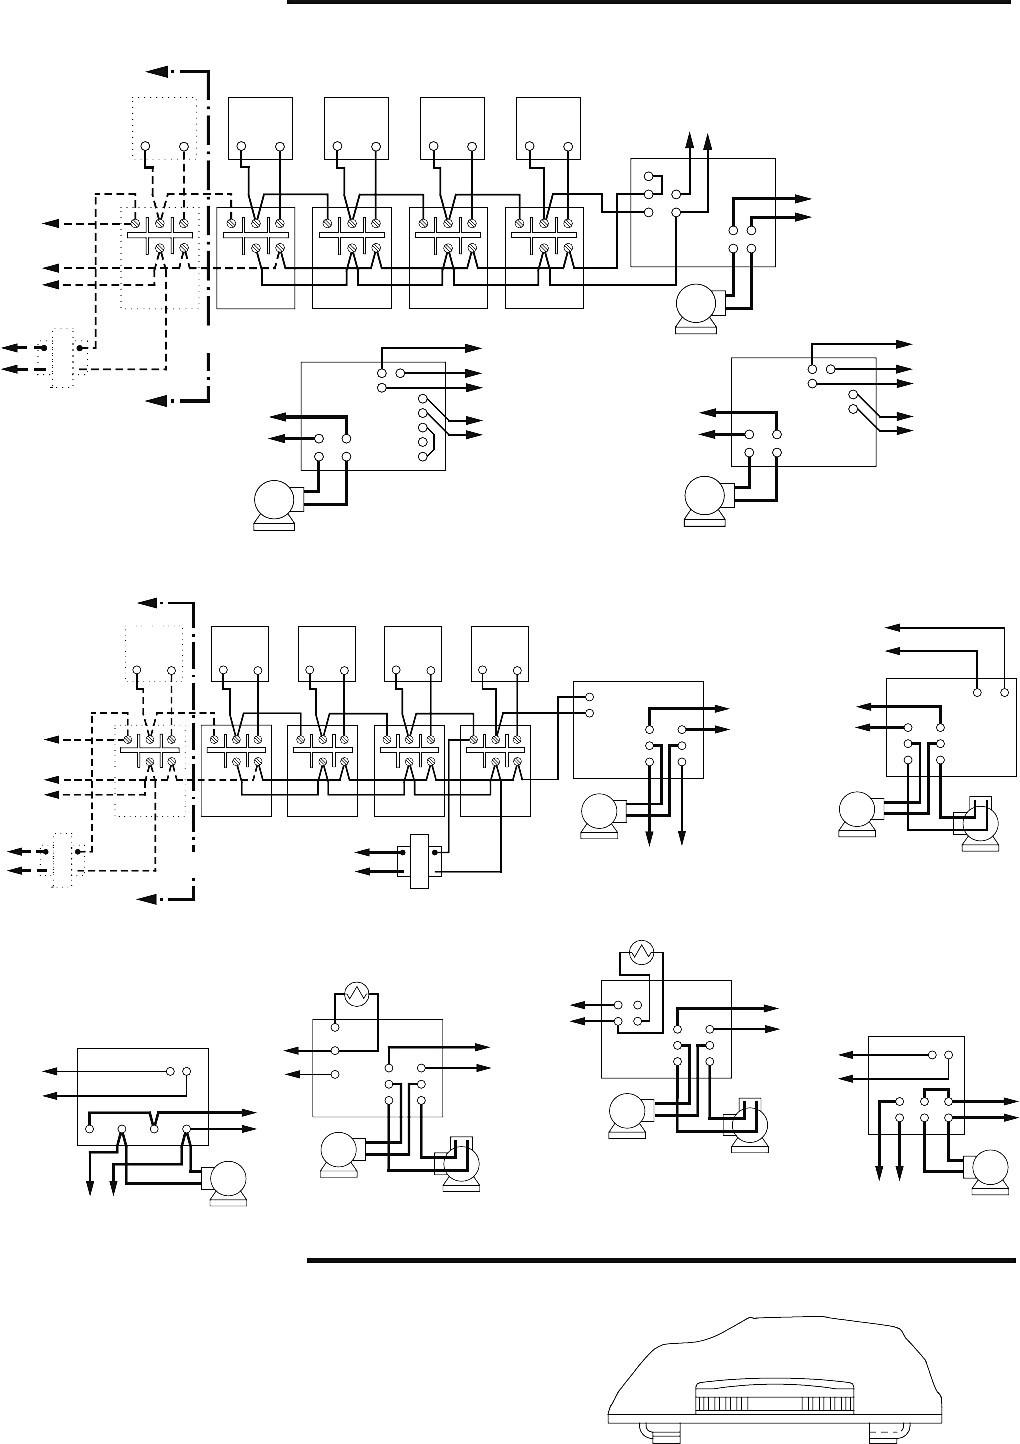 white rodgers zone valve wiring diagram Download-white rodgers zone valve wiring diagram brilliant sevimliler lovely rh bjzhjy net 2-o